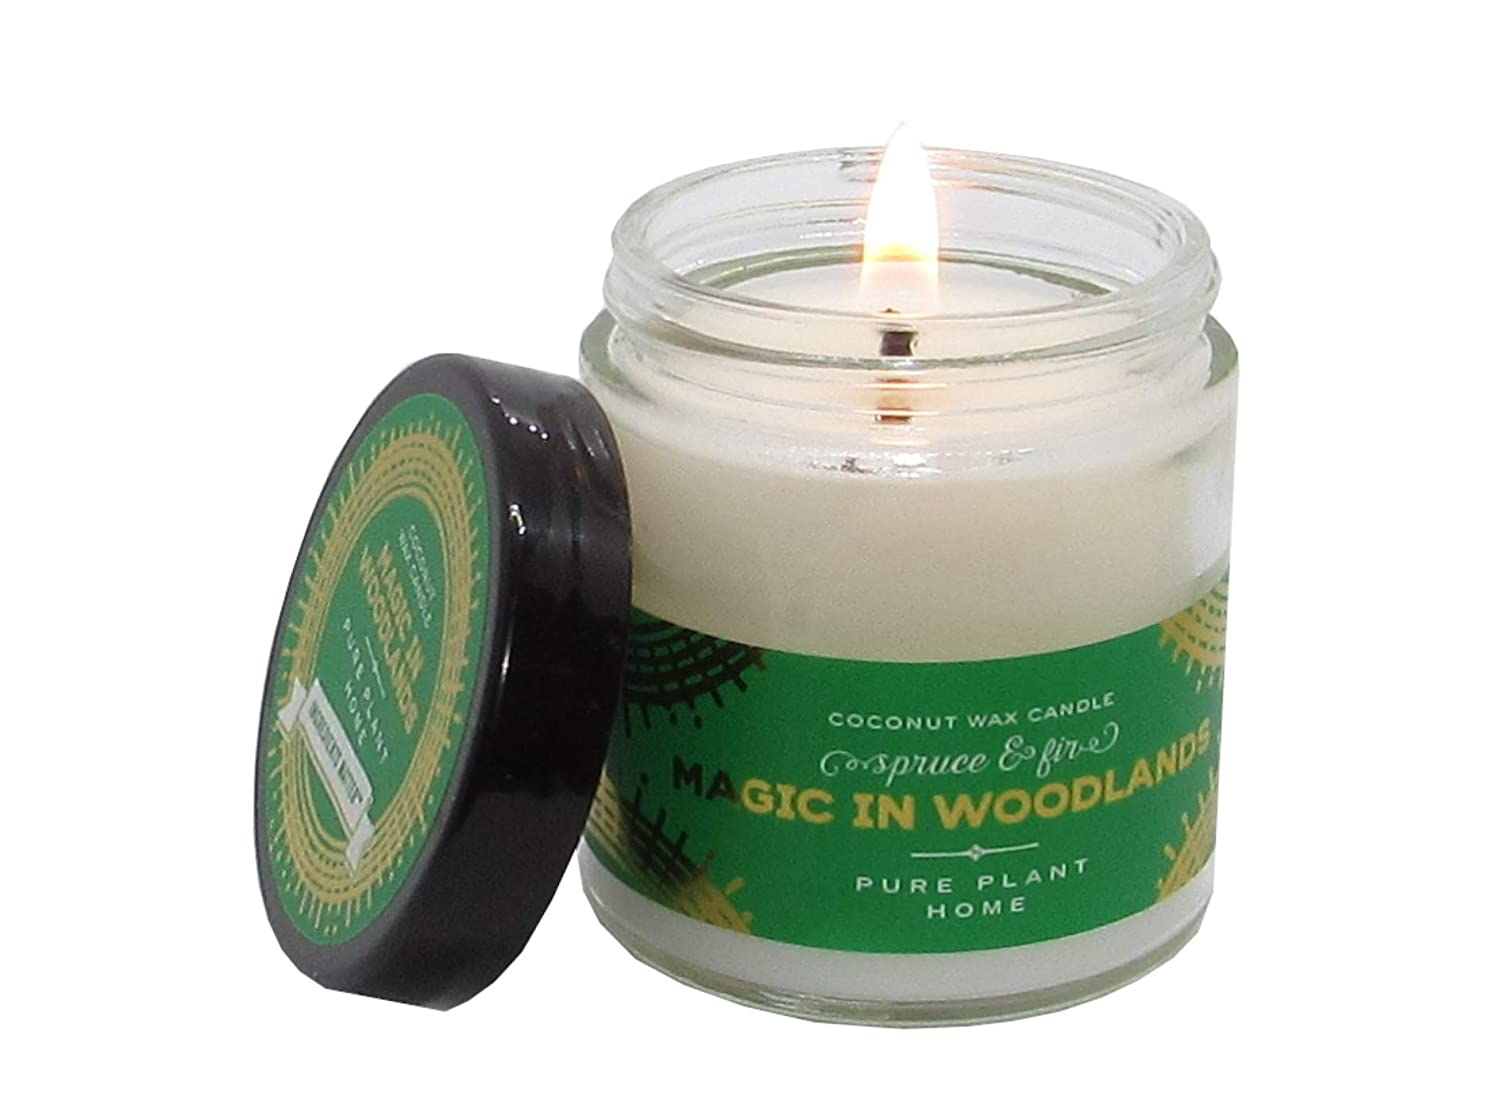 Pure Plant Home Candles